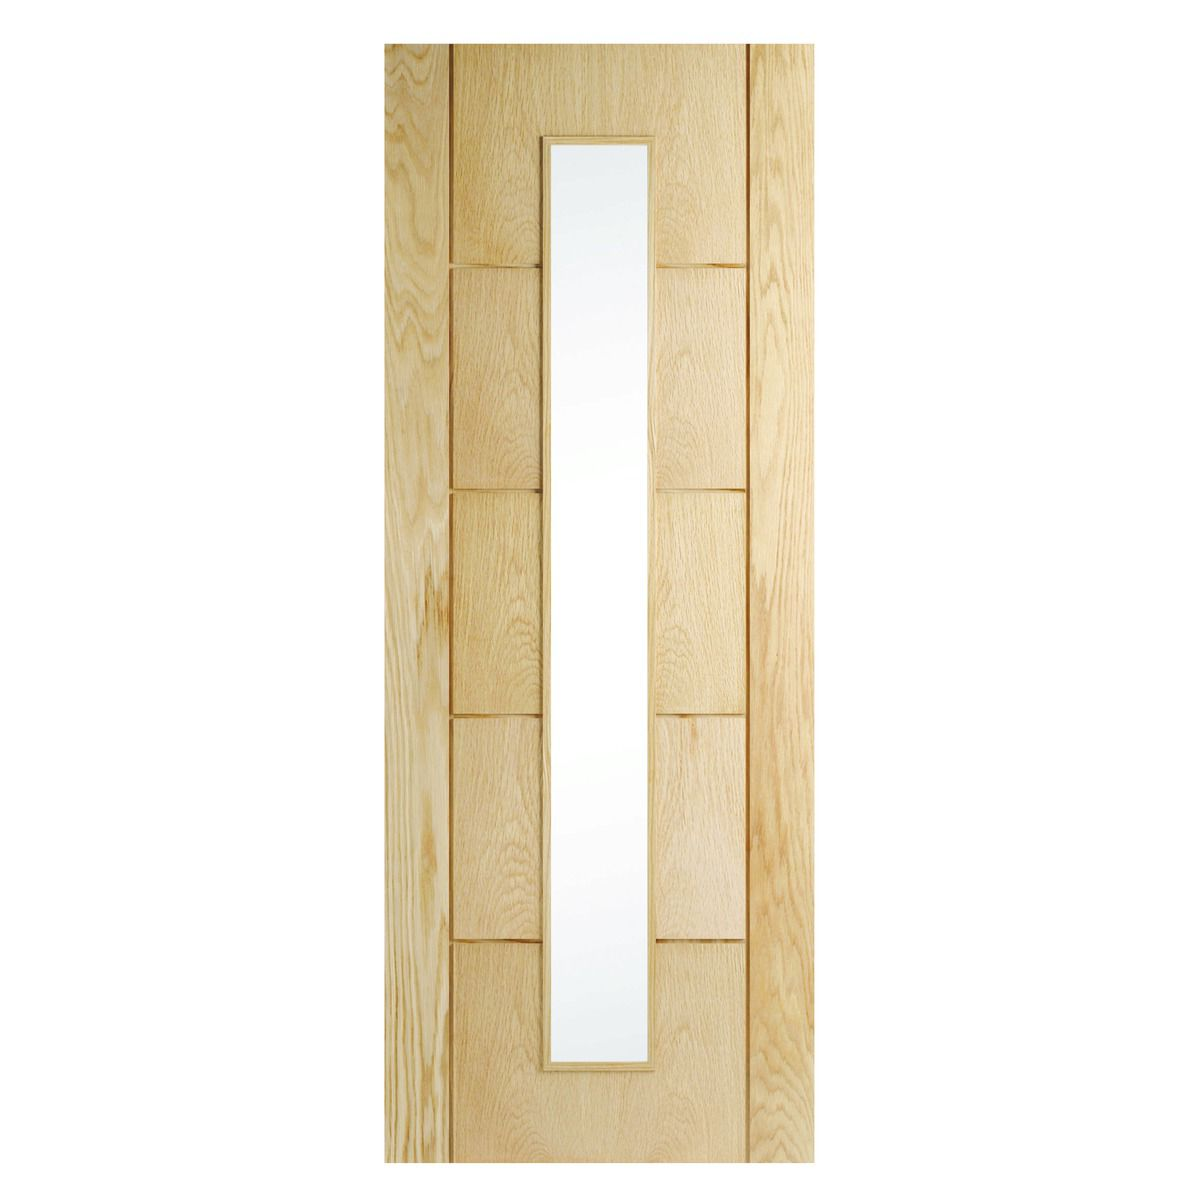 Wickes Thame Glazed Oak 5 Panel Internal Door   1981mm X 686mm by Wickes